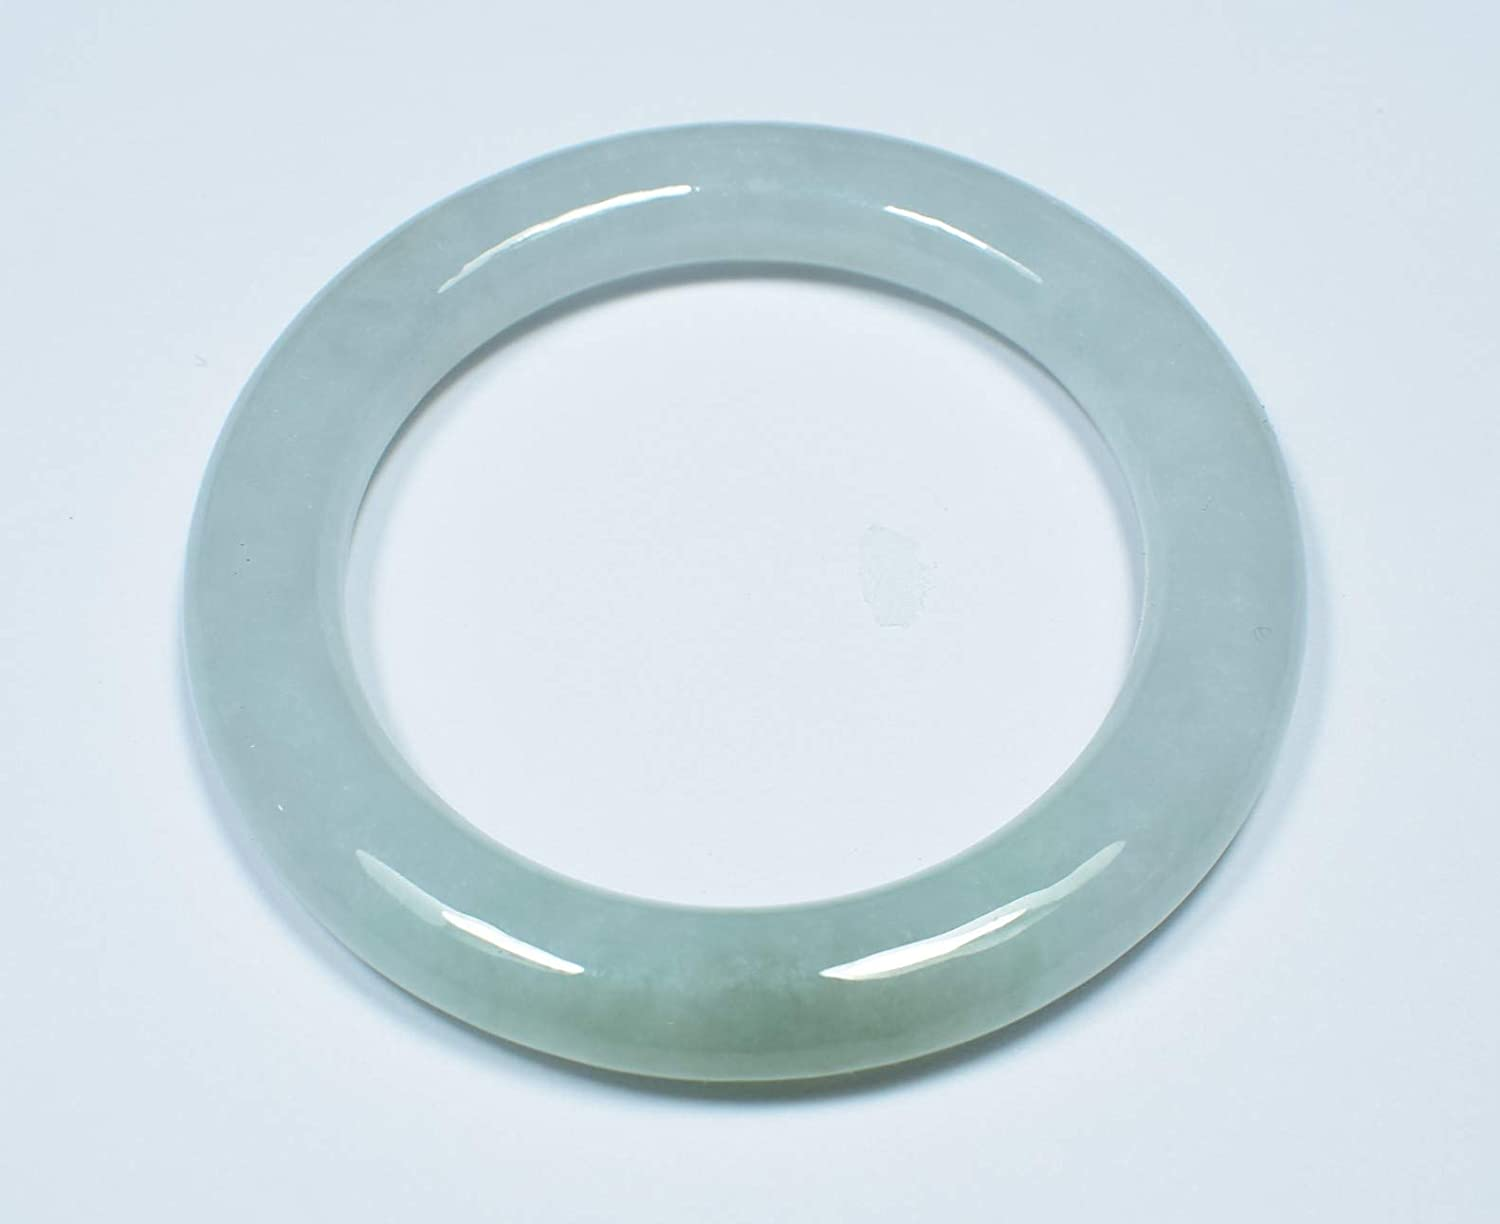 gojade Certified Green 100/% Natural A Jade Jadeite Bangle Bracelet 38.5mm 手镯 702420